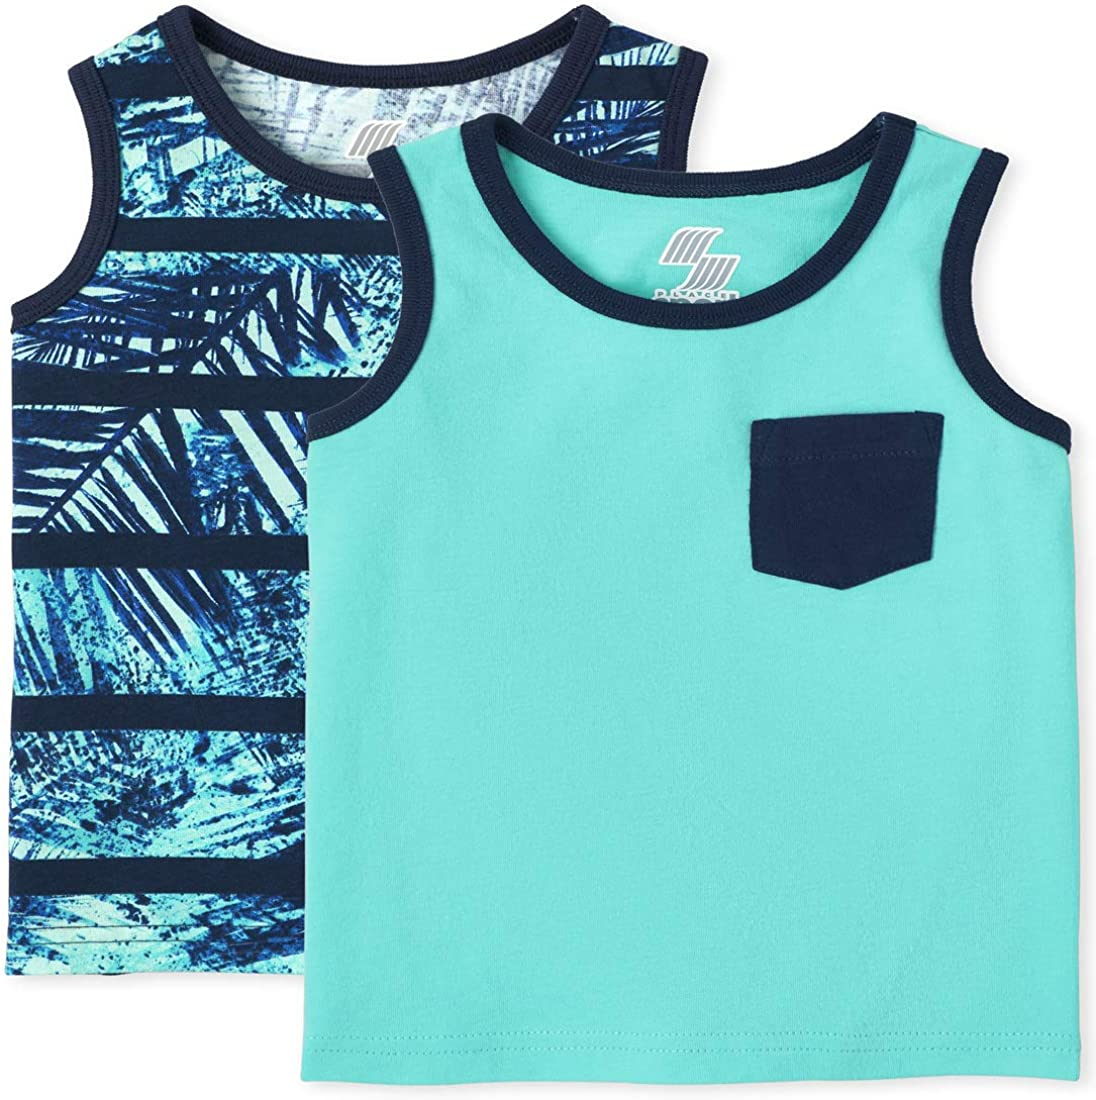 The Children's Place Toddler Boys Pocket Tank Top 2-Pack